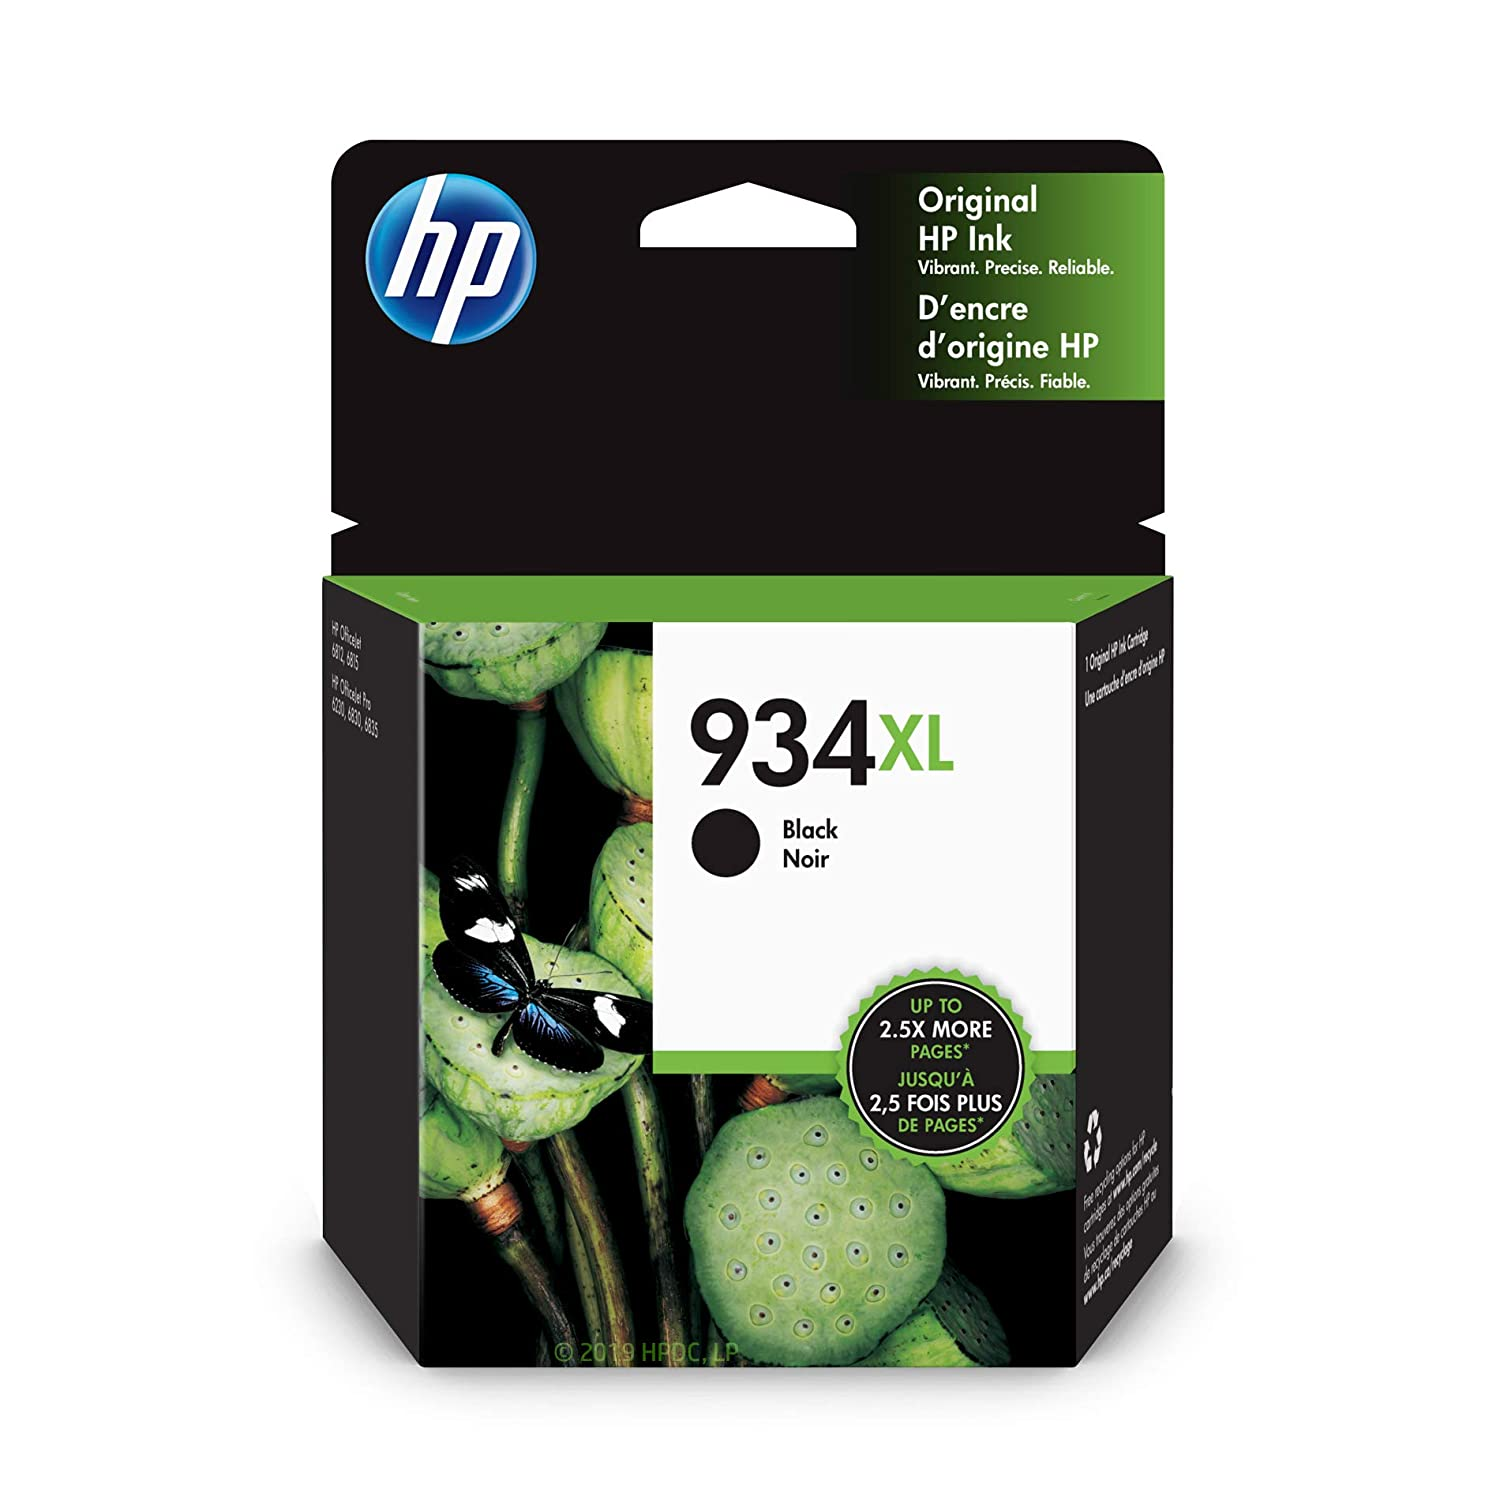 HP 934XL Black Ink Cartridge (C2P23AN)